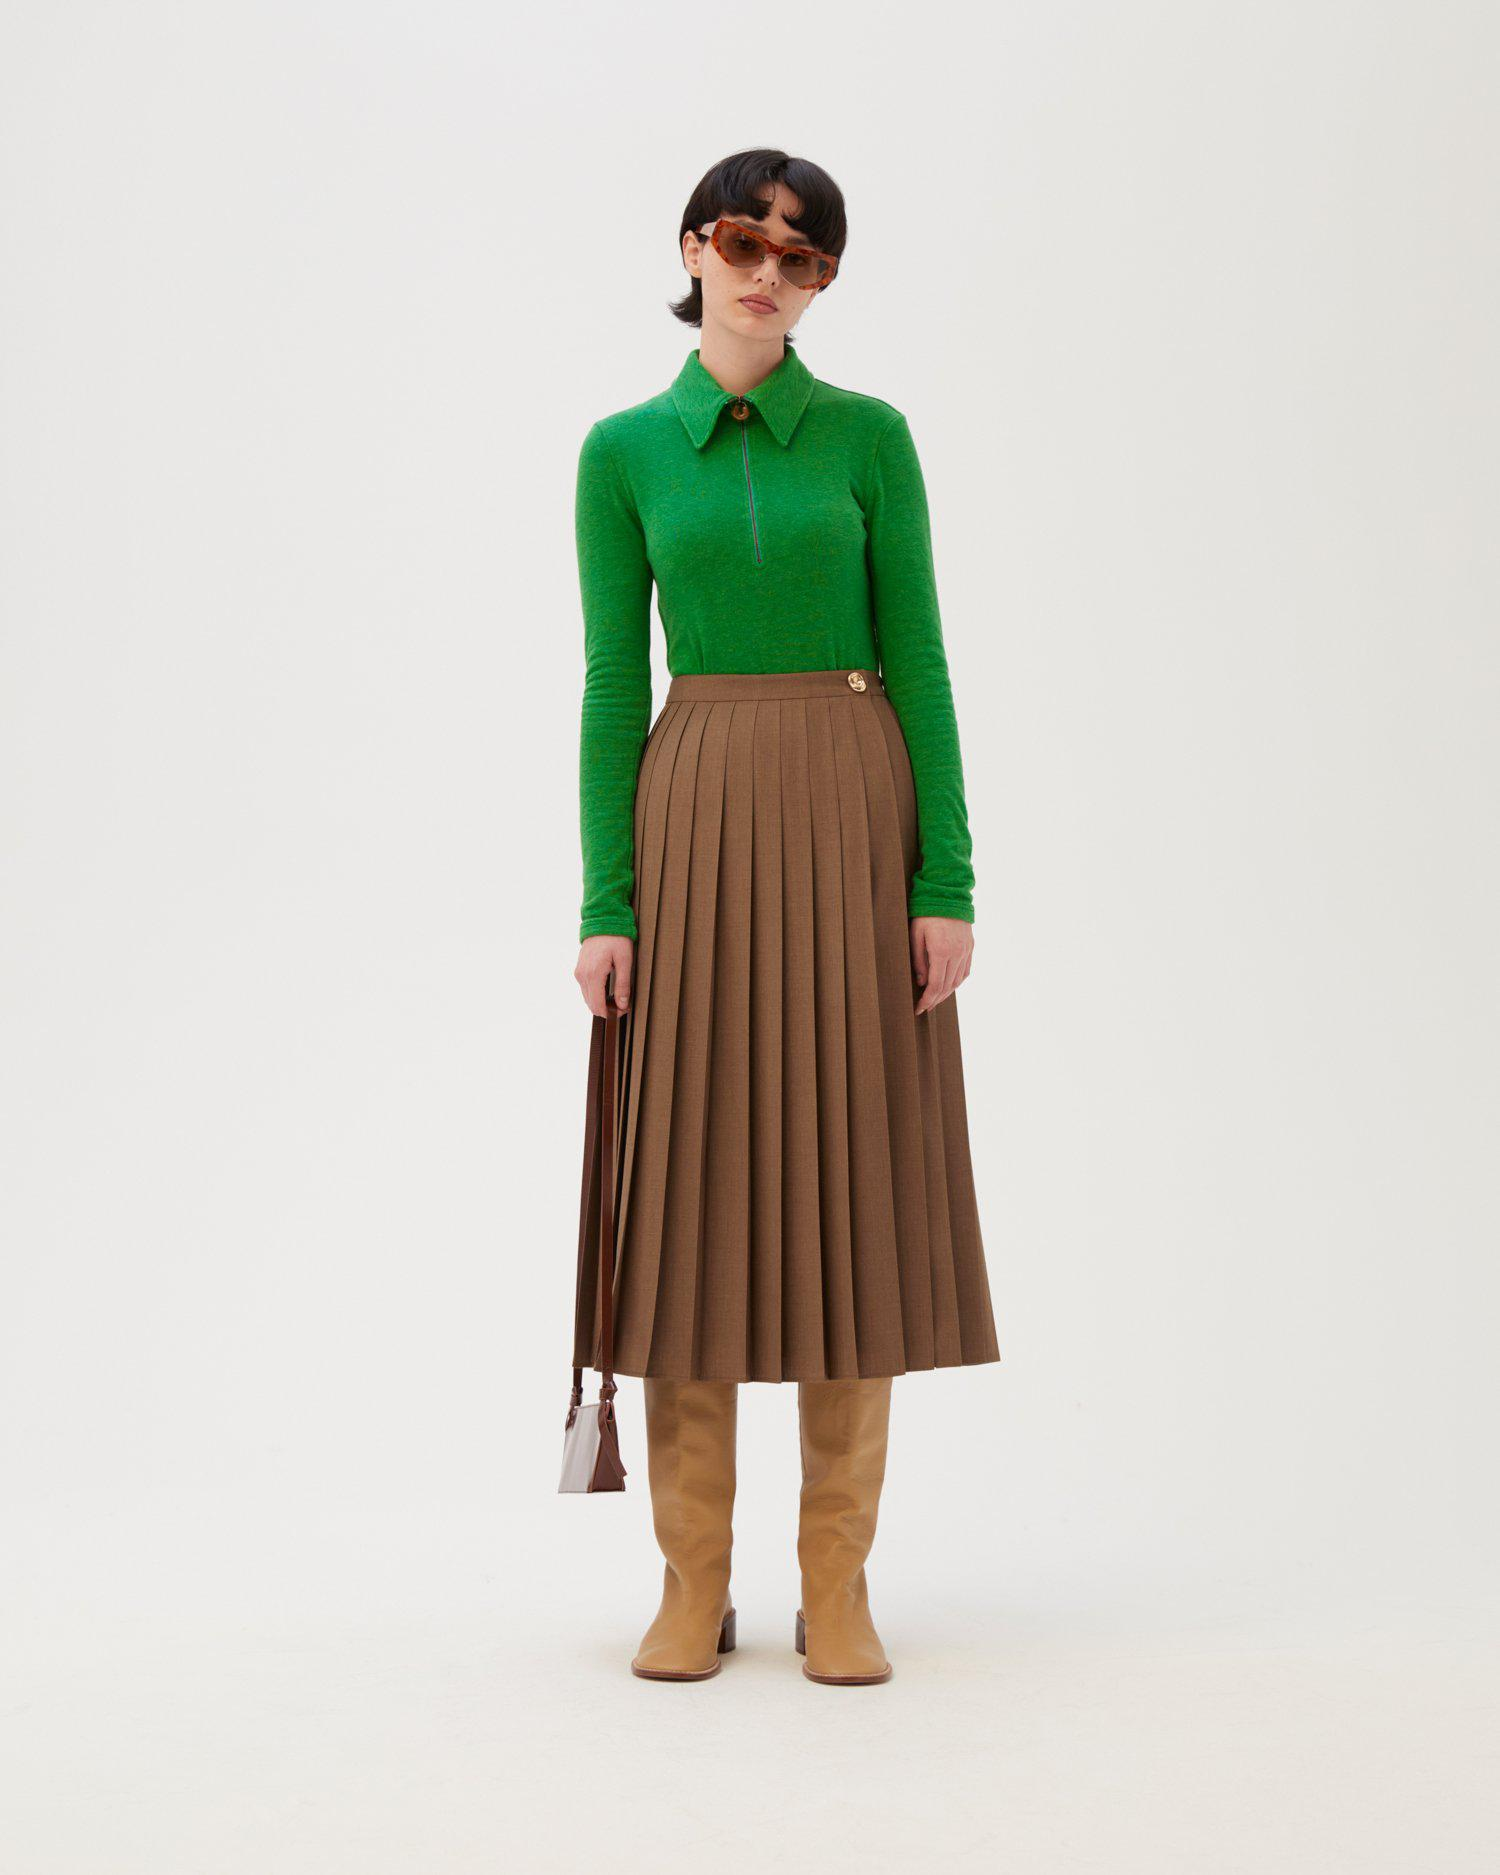 Kitty Skirt Wool Blend Suiting Brown